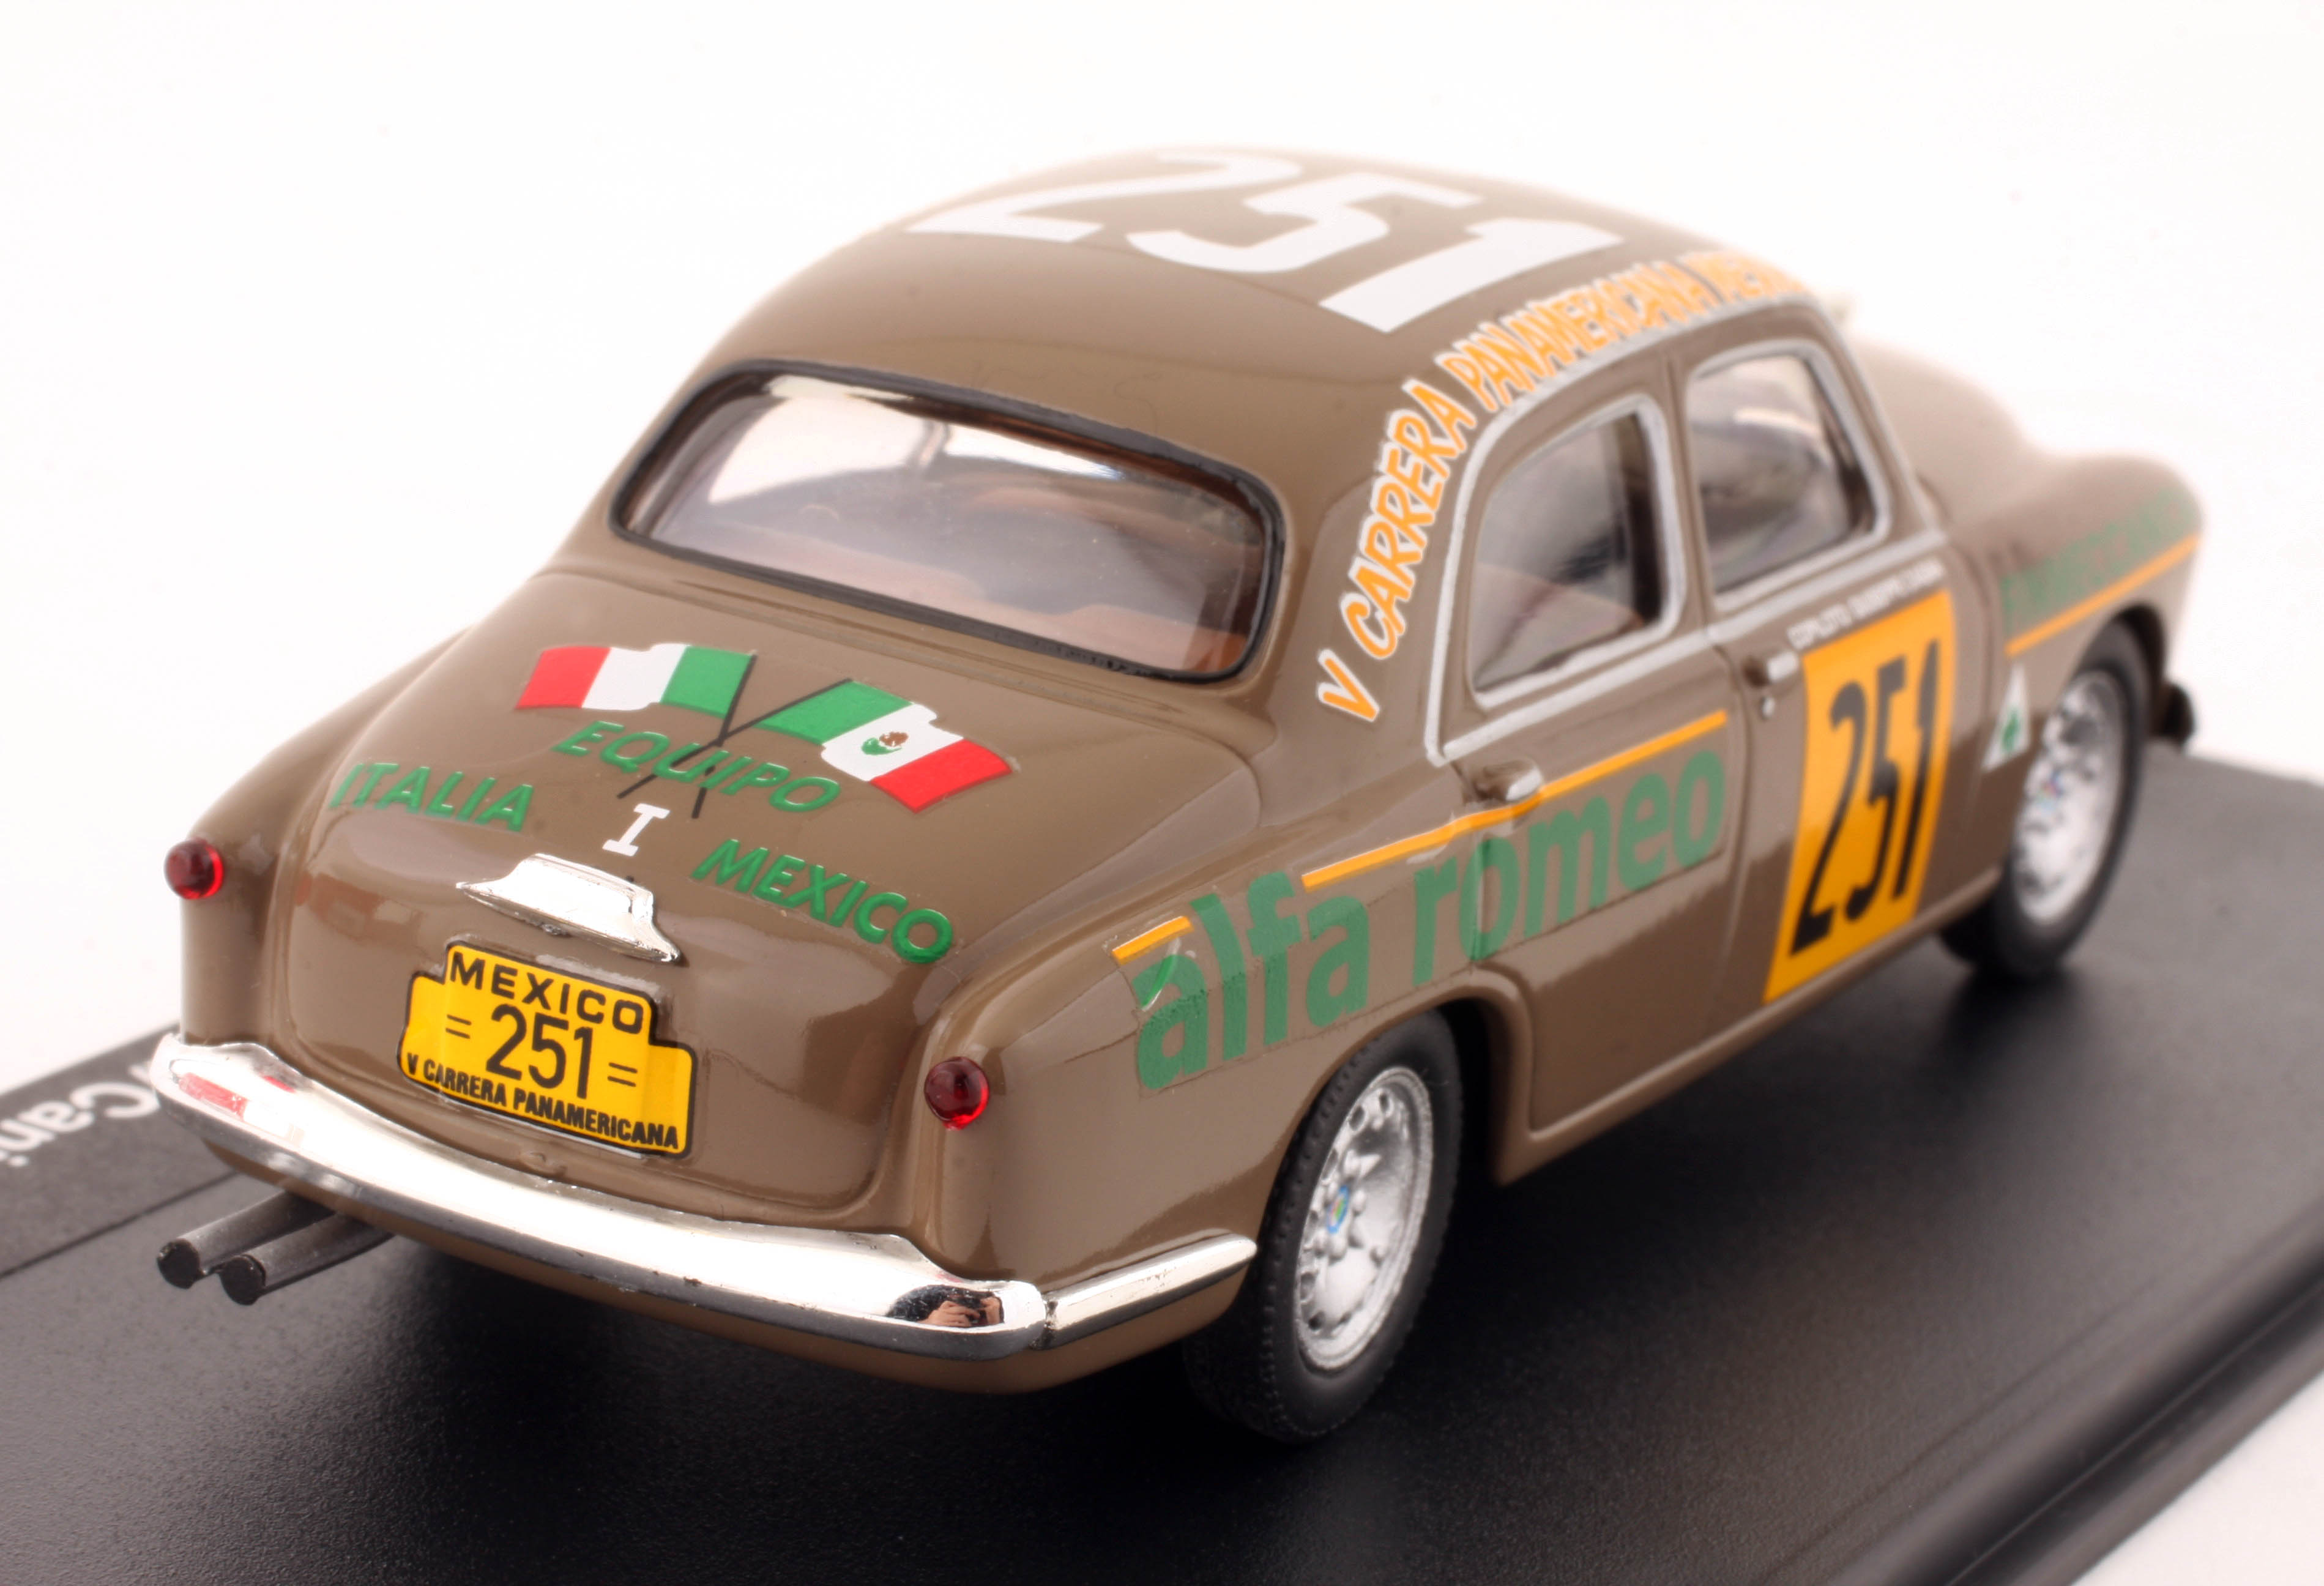 1:43 M4 - Alfa Romeo 1900 - 1954 Carrera Messicana - Sanesi-Cania Diecast Model Car